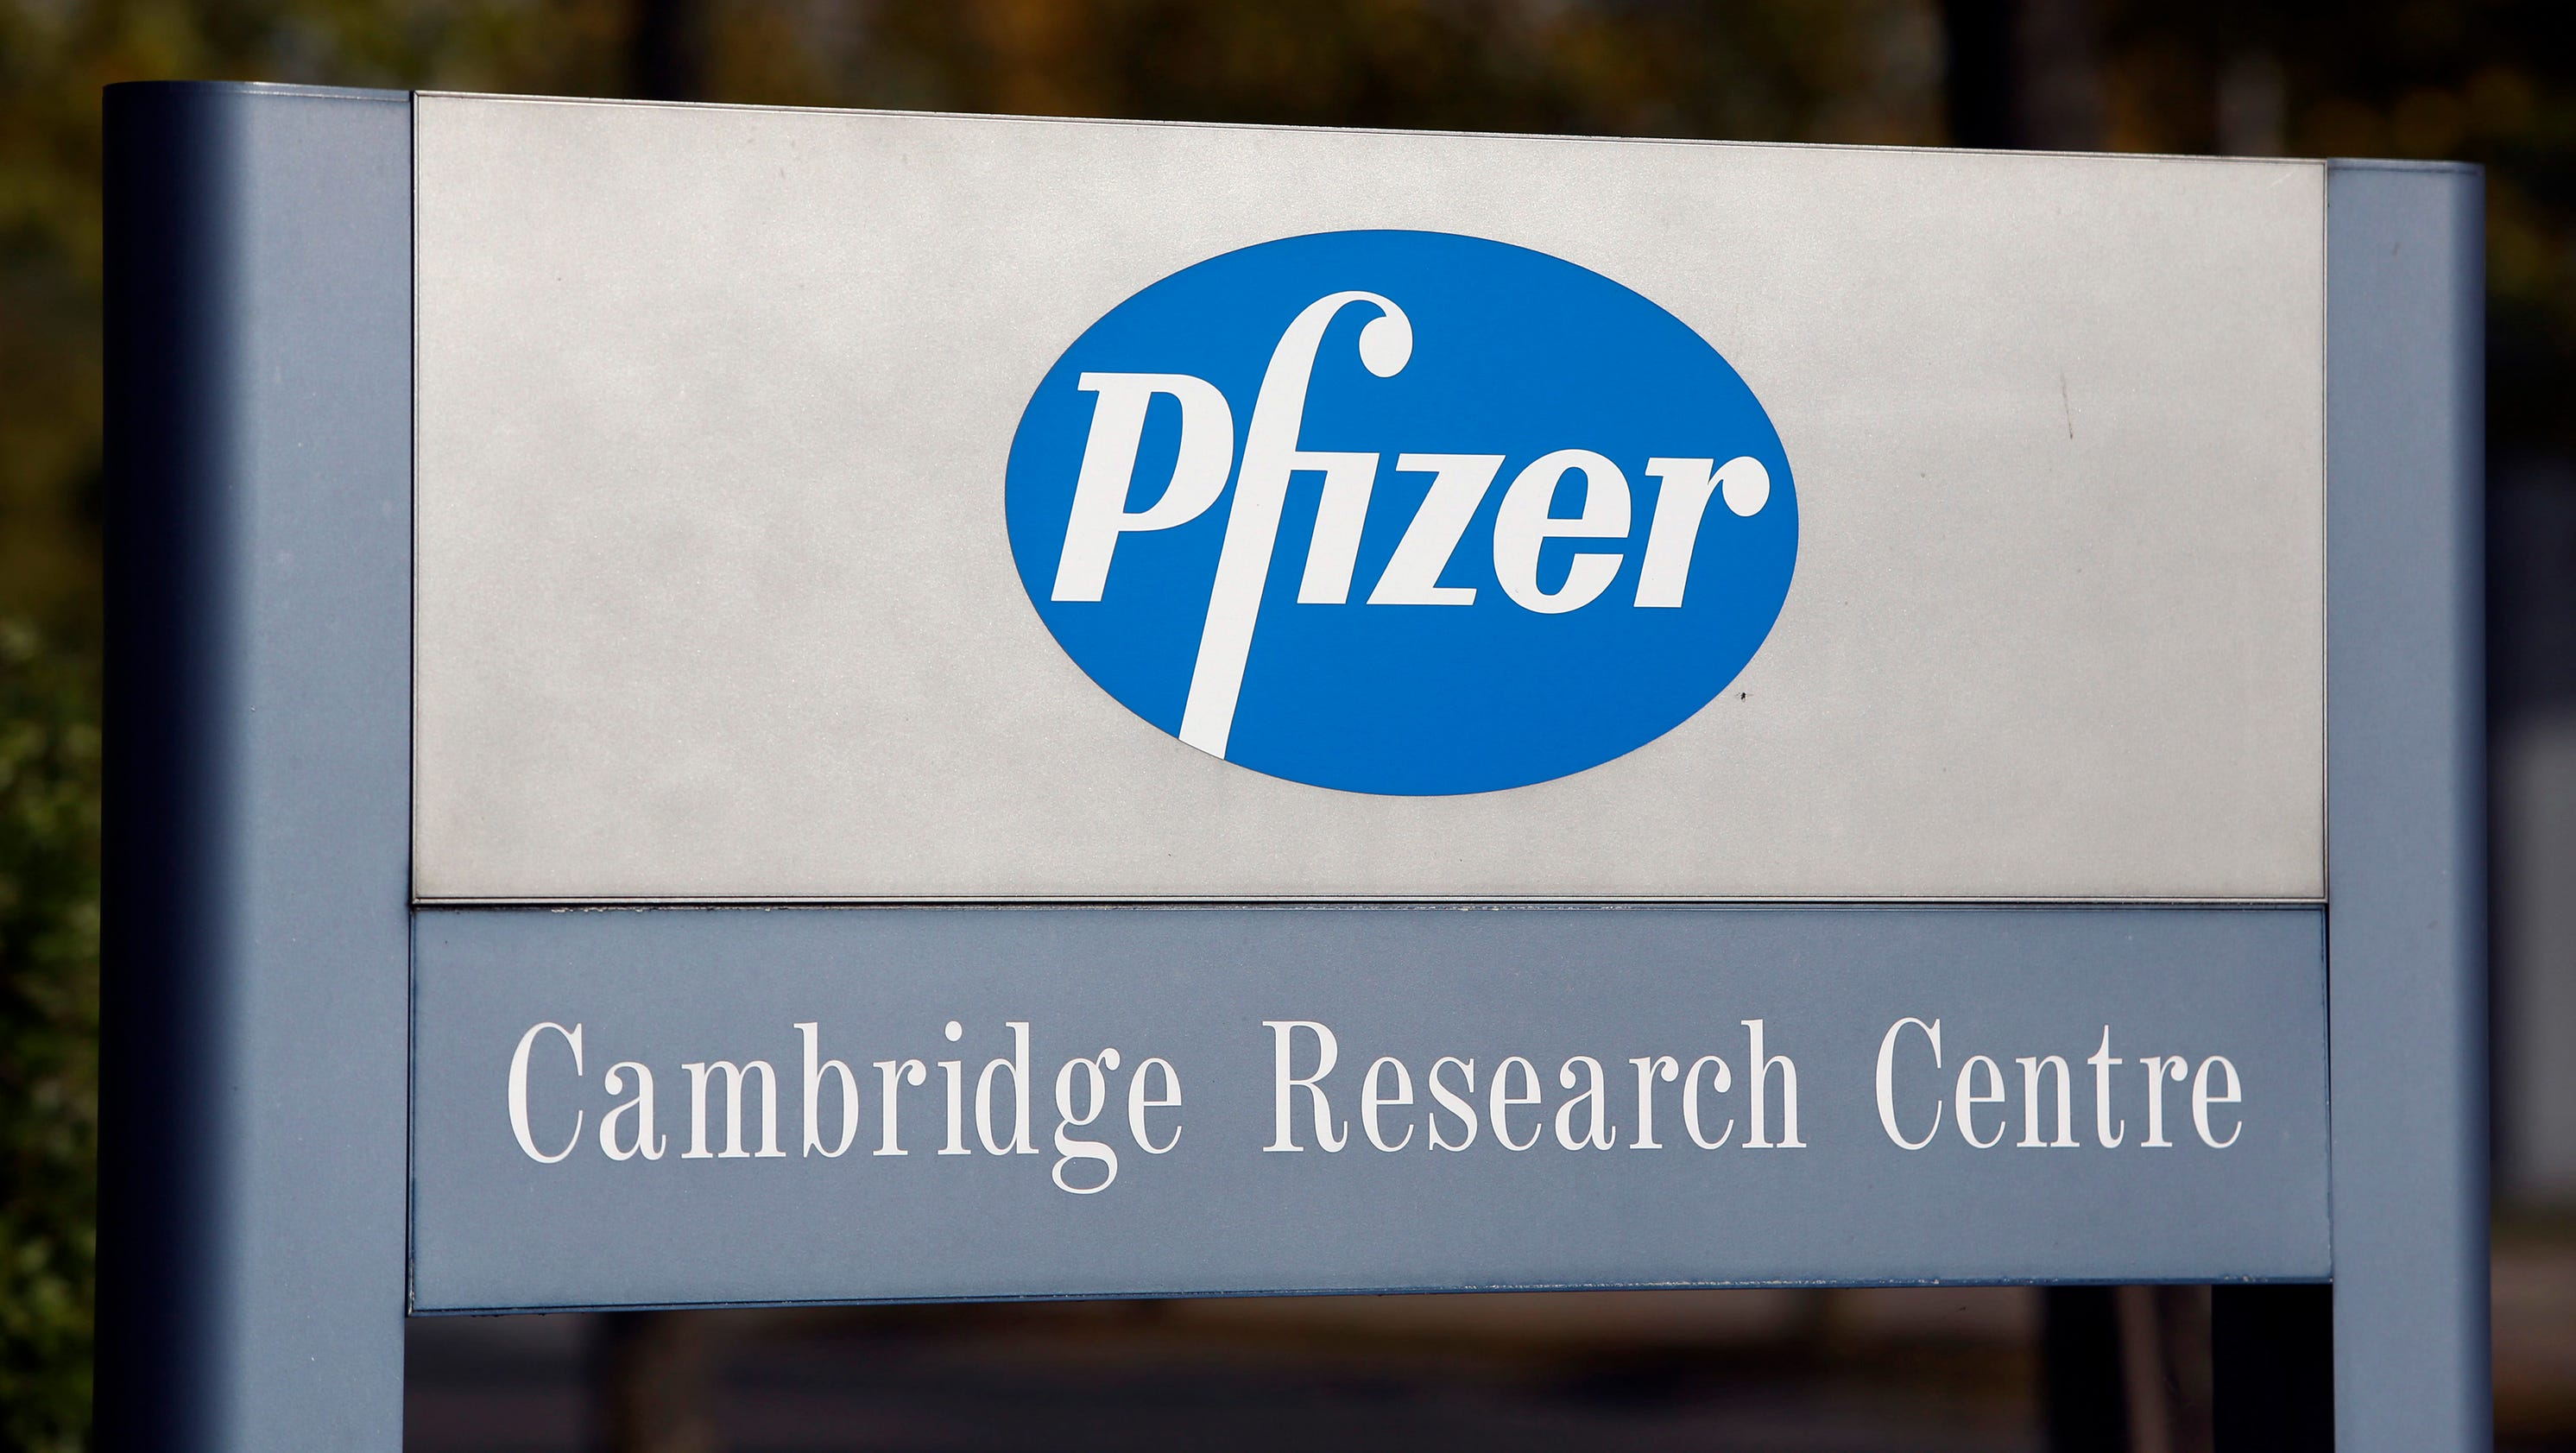 pfizer central research The emerging markets thrombosis investigator-initiated research program (emrista) has been established to fund innovative medical research from researchers across pfizer's emerging markets, including africa, asia, latin america and the middle east.